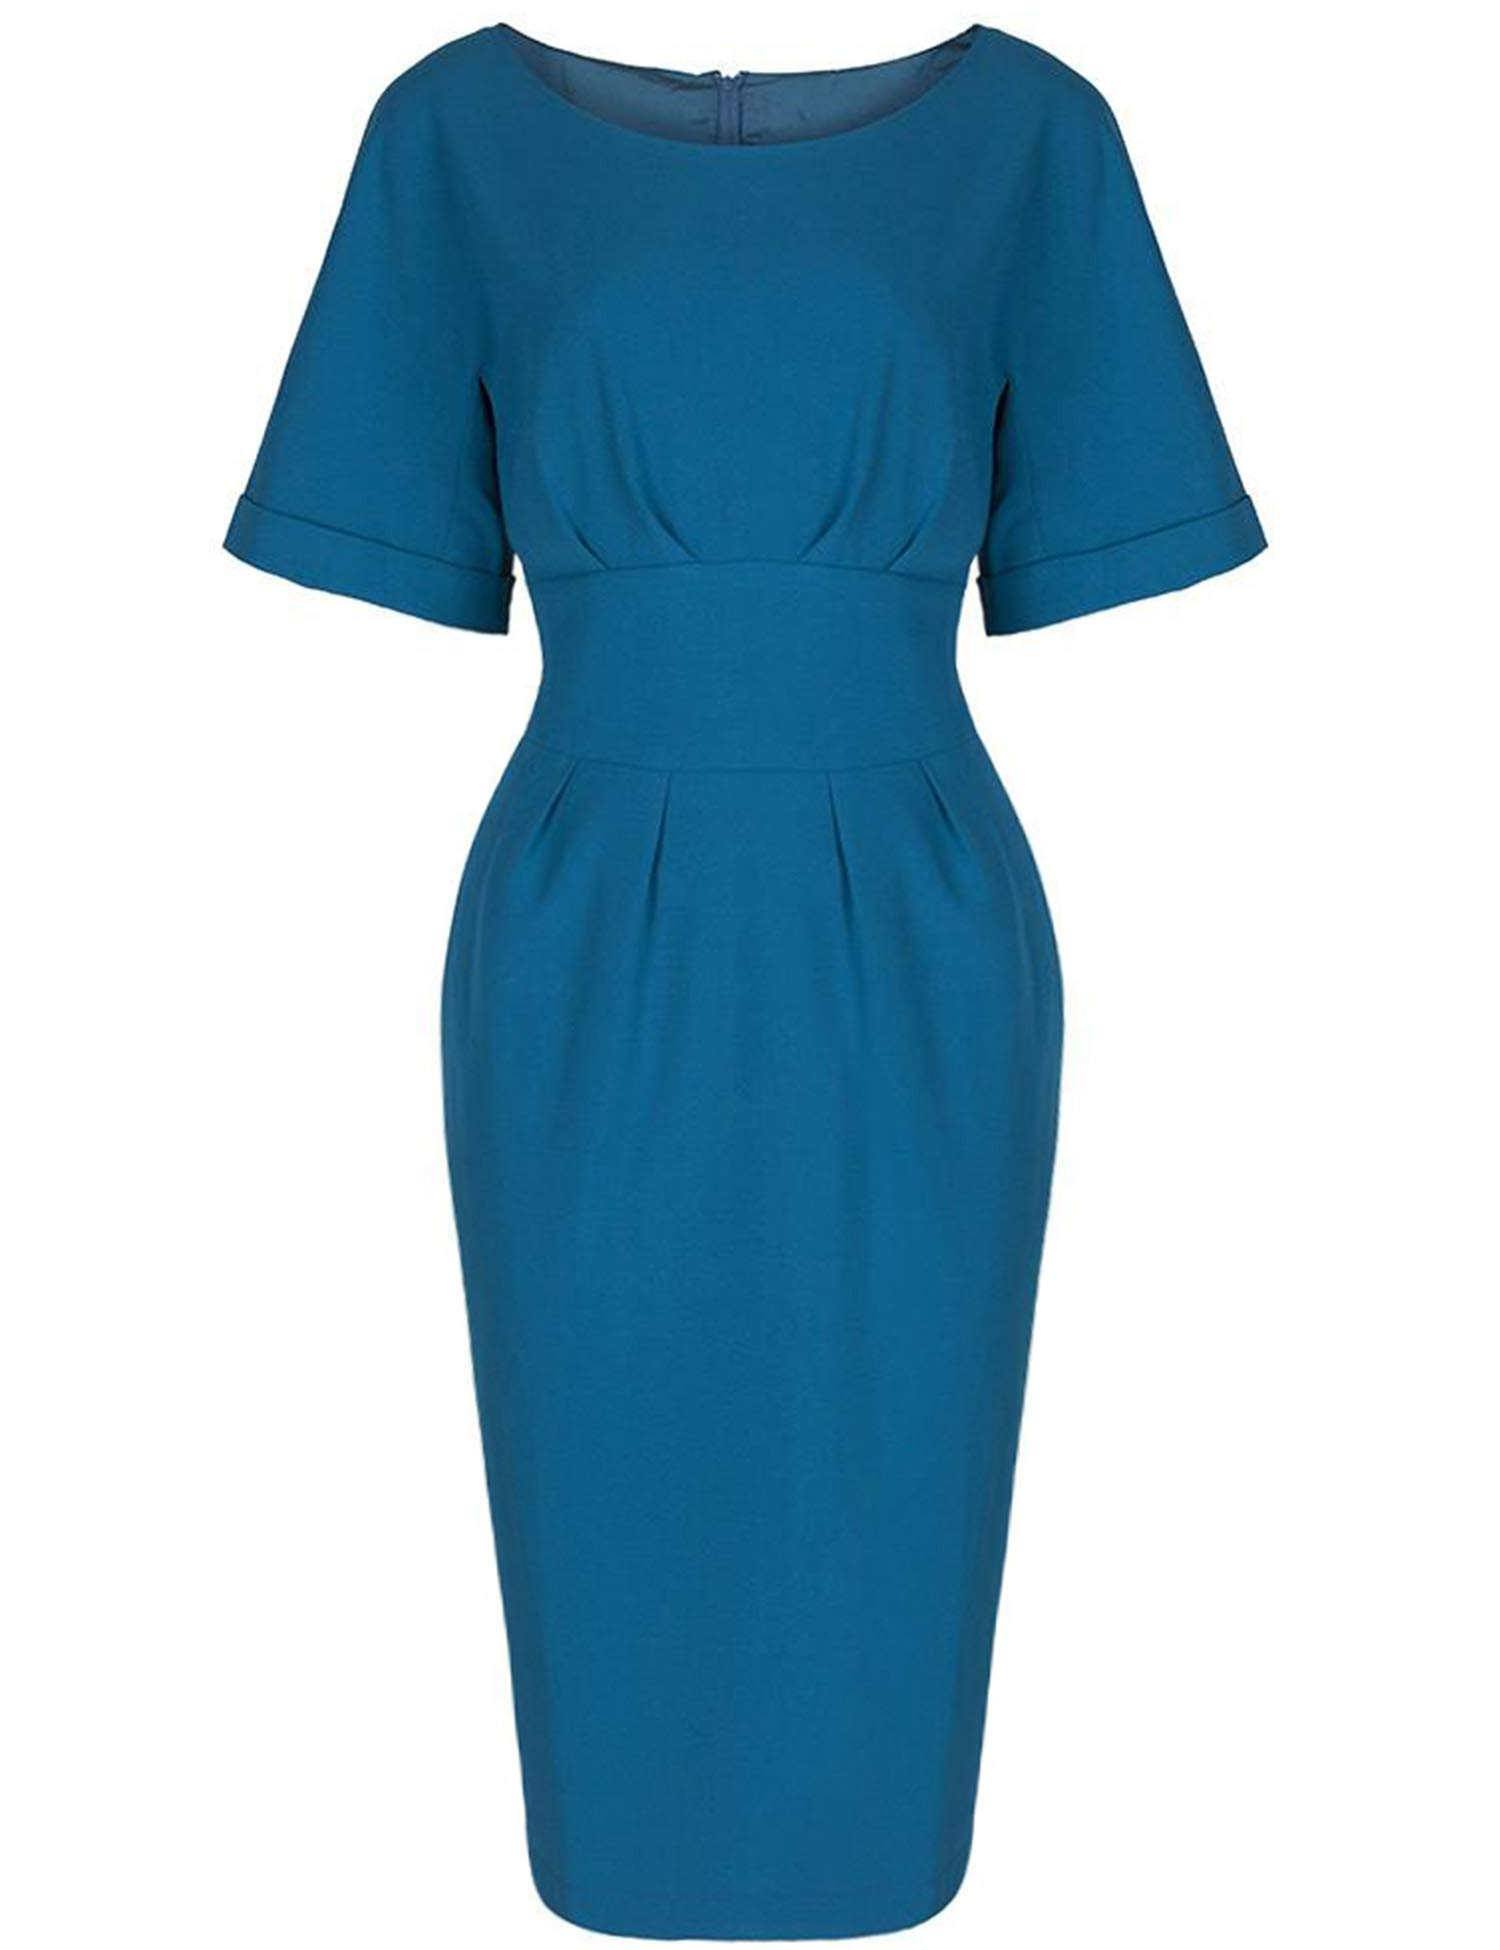 Available at Amazon: GownTown 1950s Vintage Office Pencil Dresses